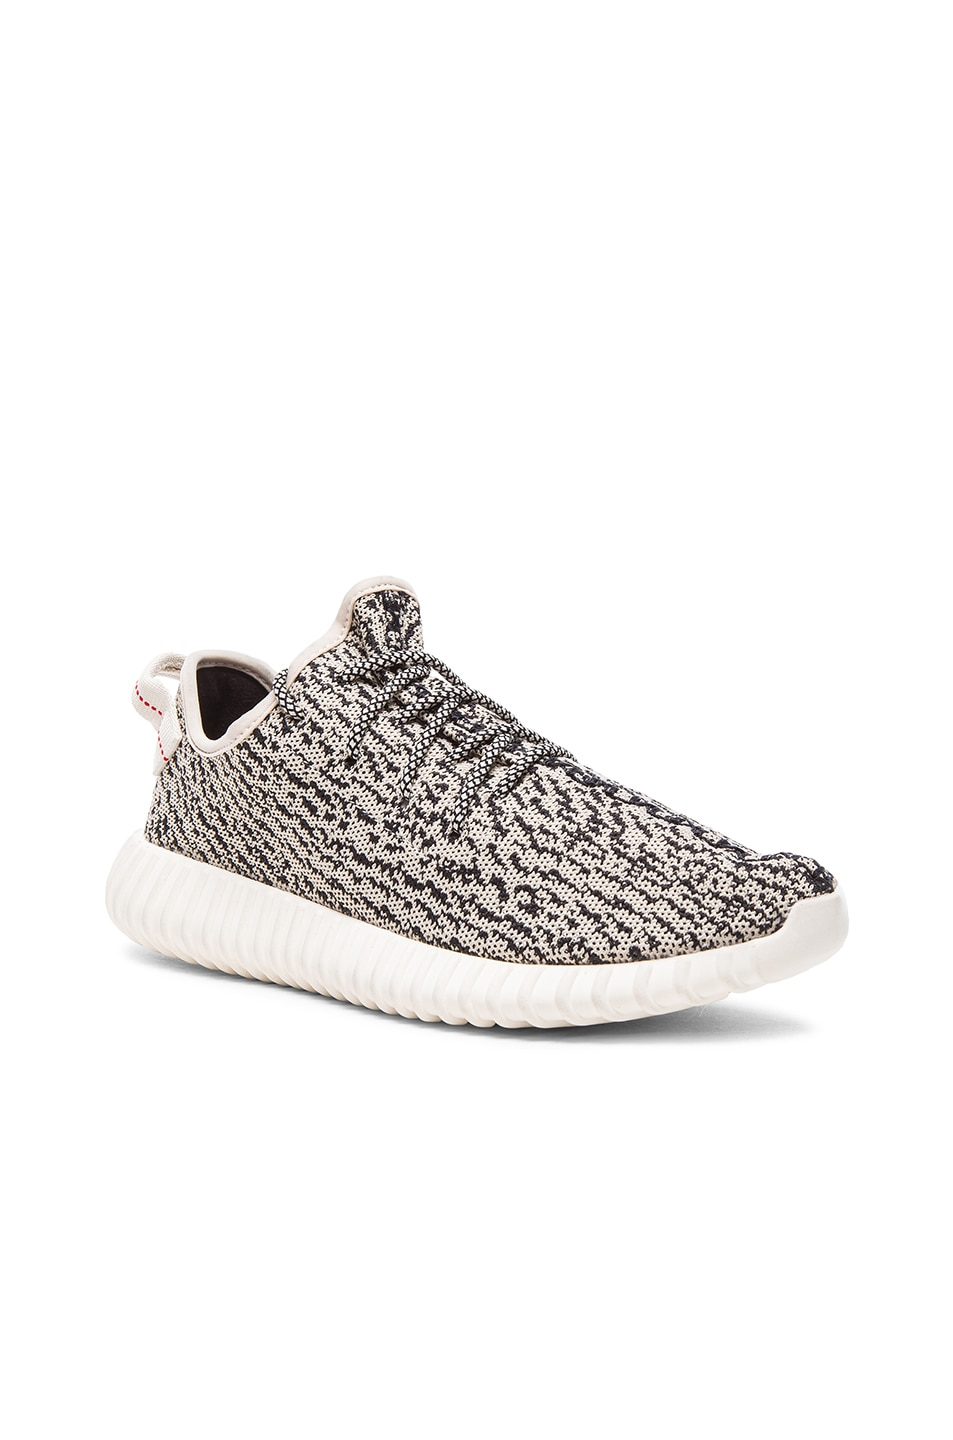 Adidas yeezy turtle dove for Interieur yeezy